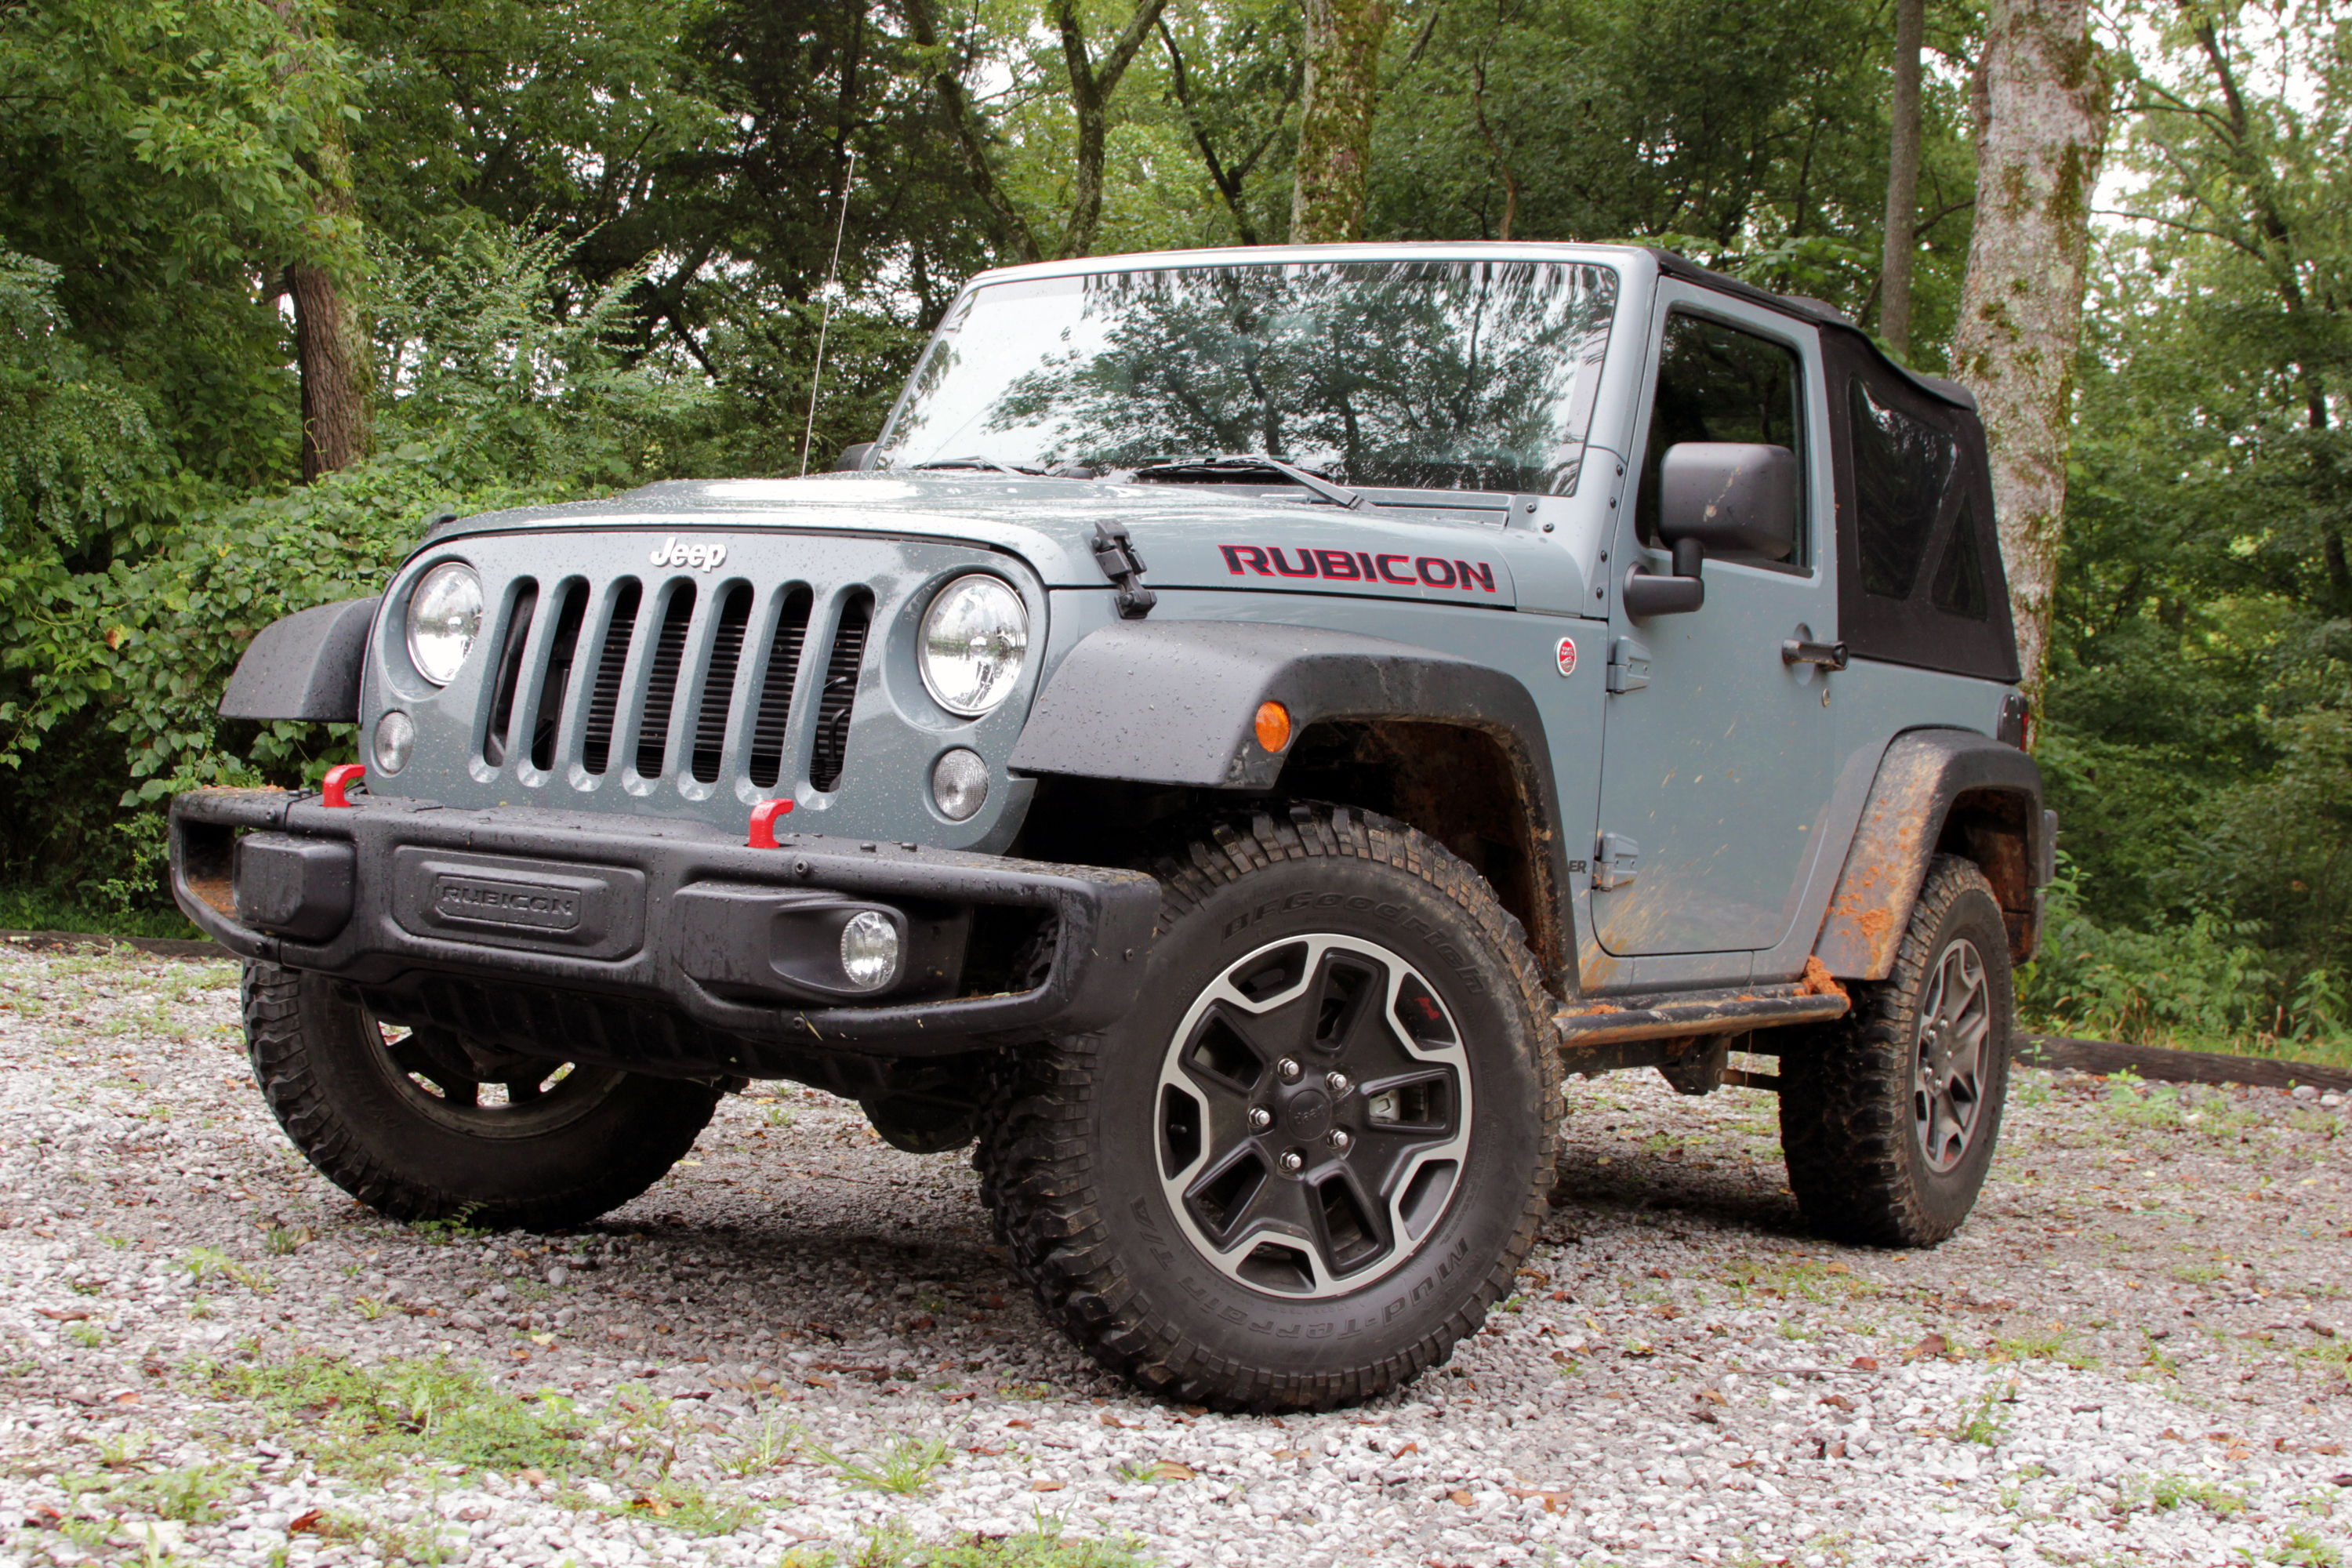 juicy jeep wrangler jl details leaked, including full-time 4wd